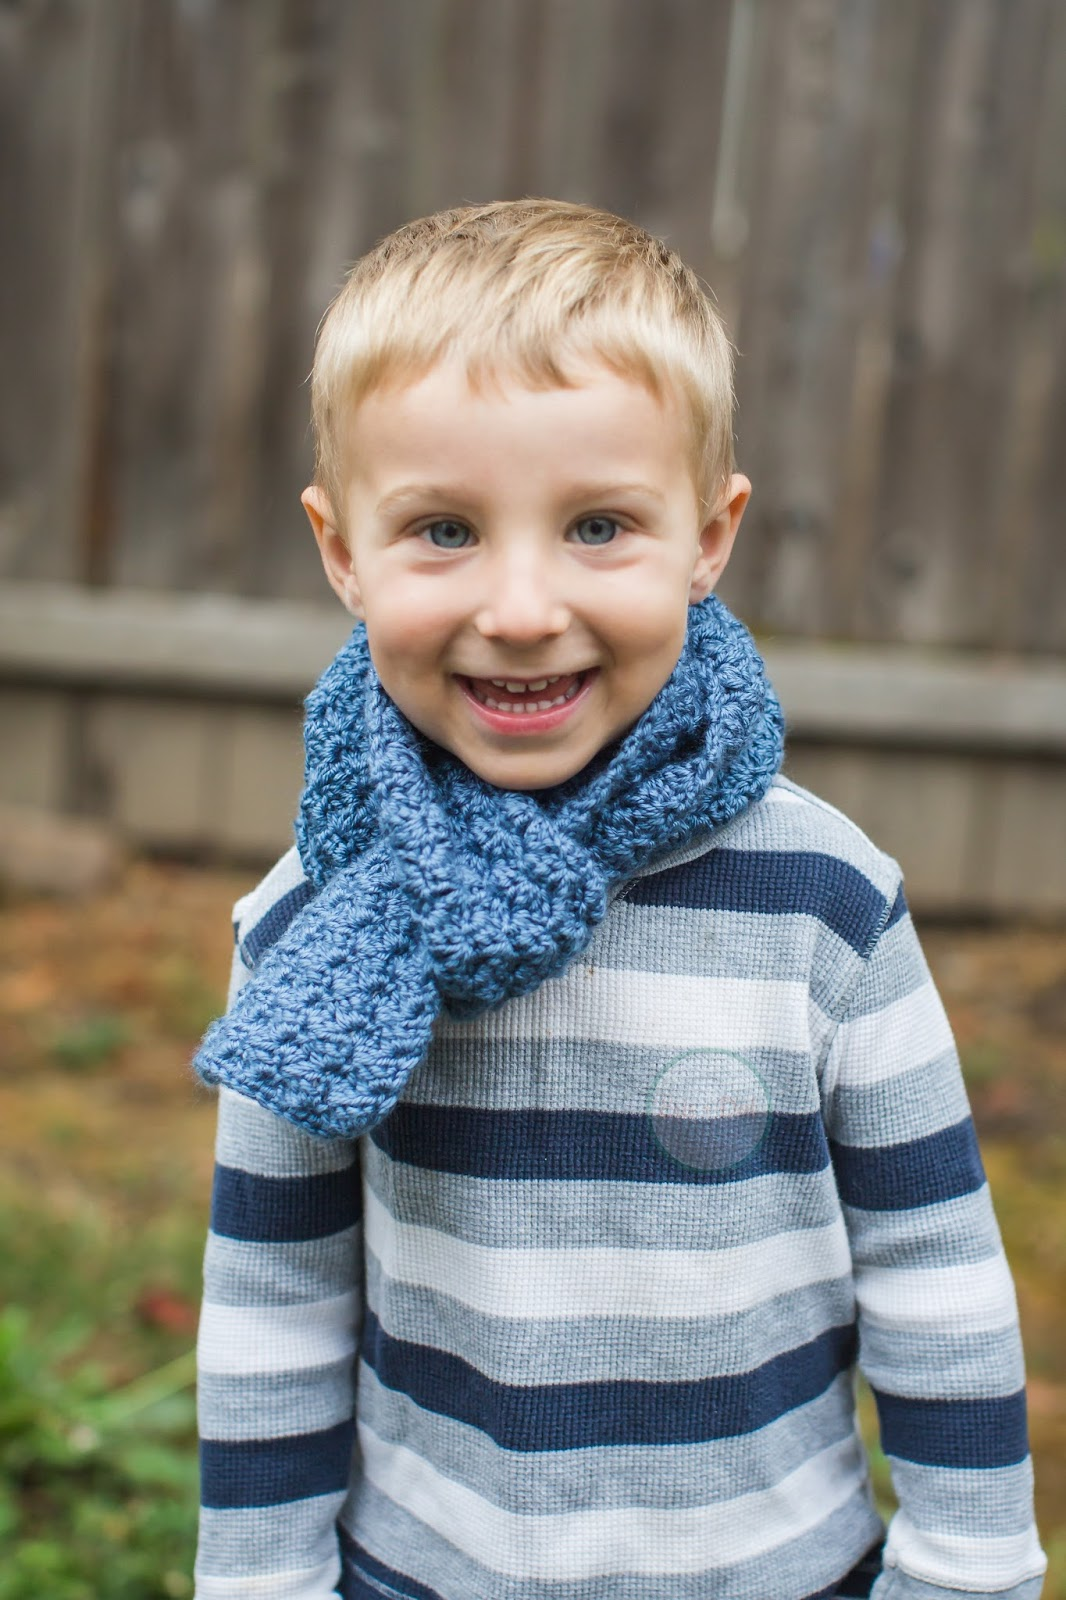 The Oliver Scarf, Children's Crochet Scarf, Toddler Scarf, For Boys, For Girls, For Kids, Knit Scarf, Neckwarmer, Scarf for Boys, Youth Scarf